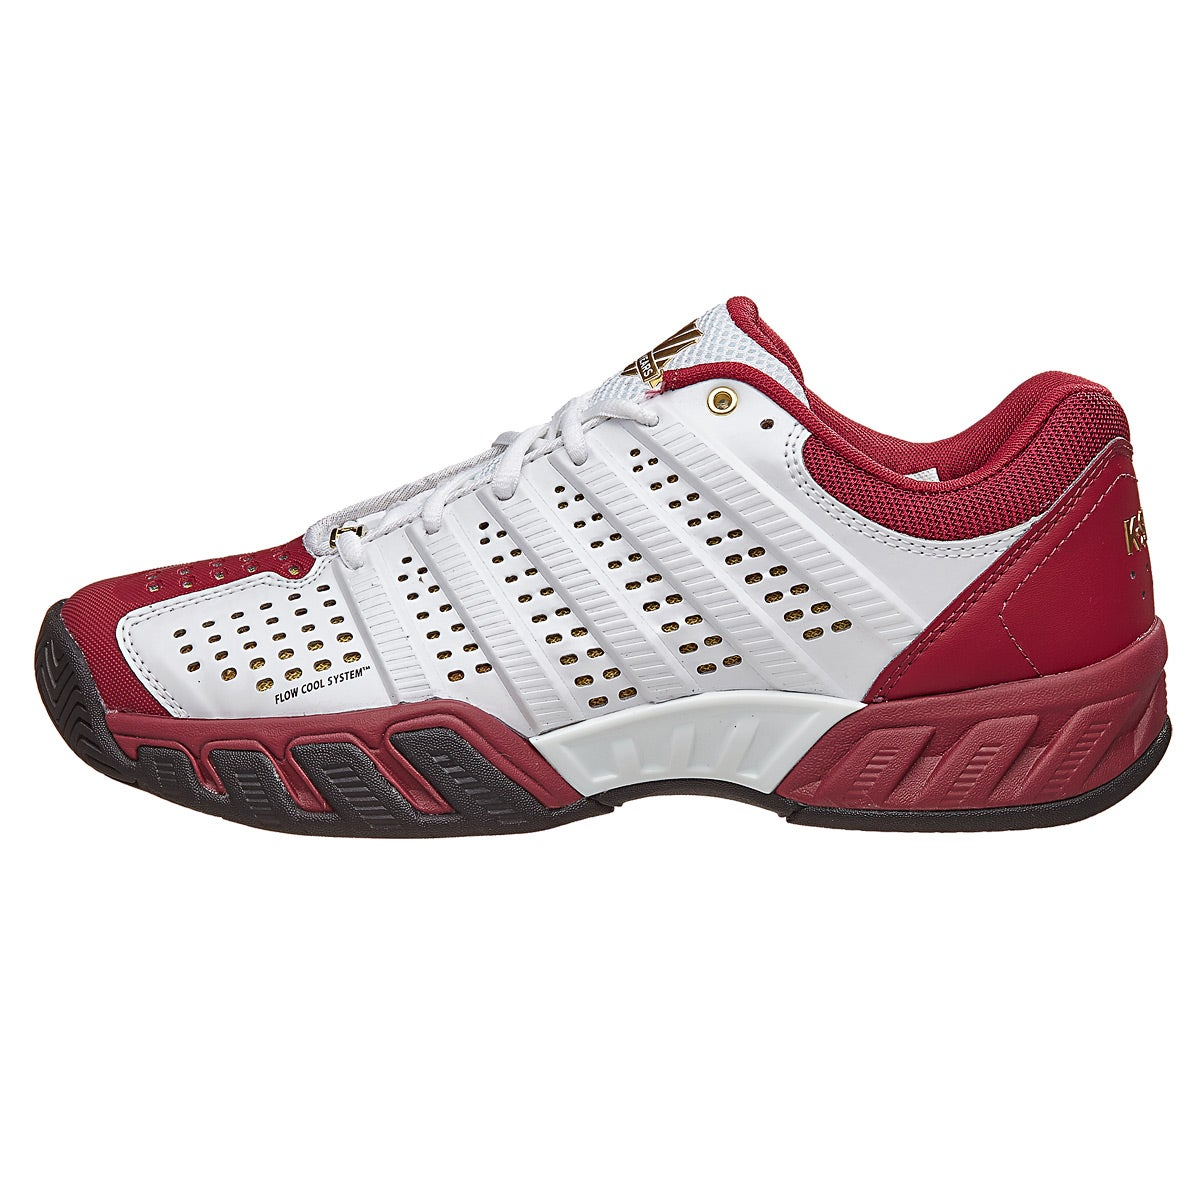 Kswiss Bigshot Light 2 5 50th White Red Men S Shoes 360 176 View